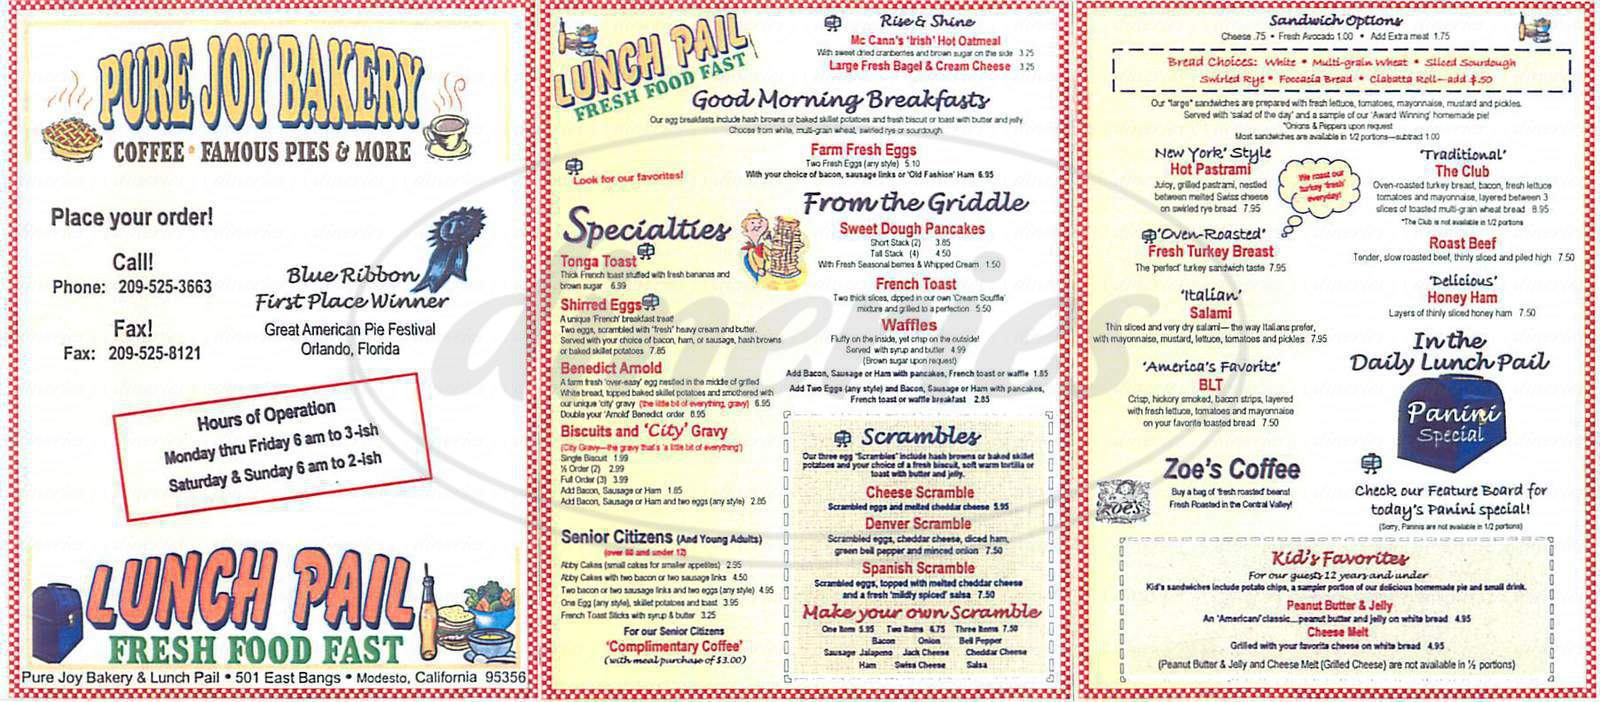 menu for Pure Joy Bakery